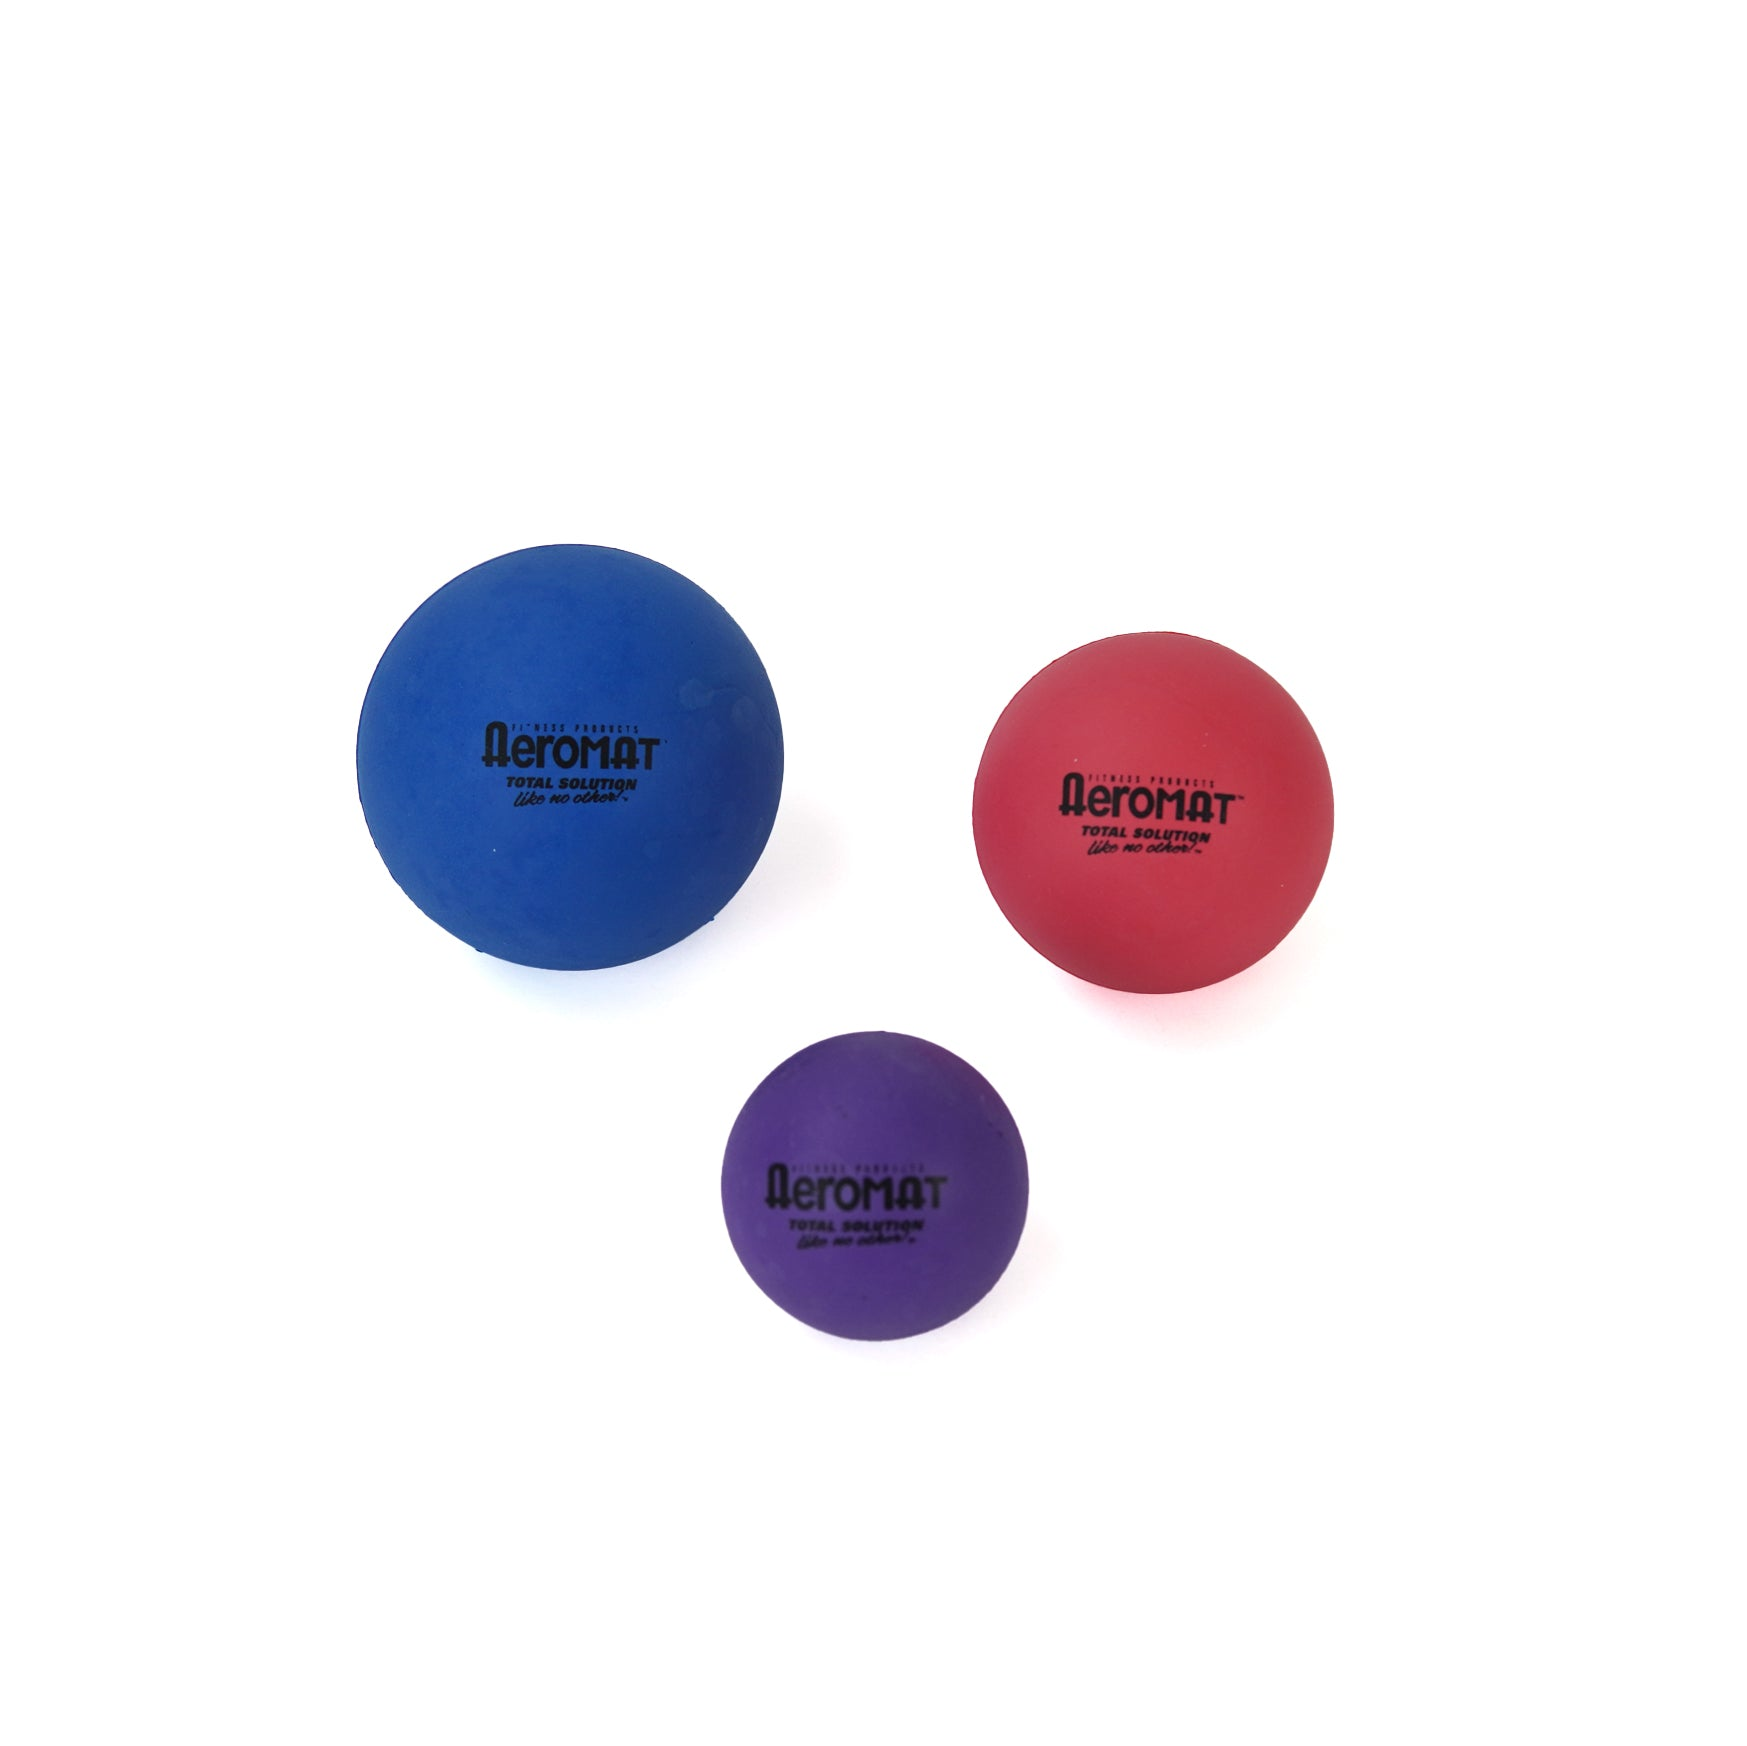 Aeromat Mini Hard Ball